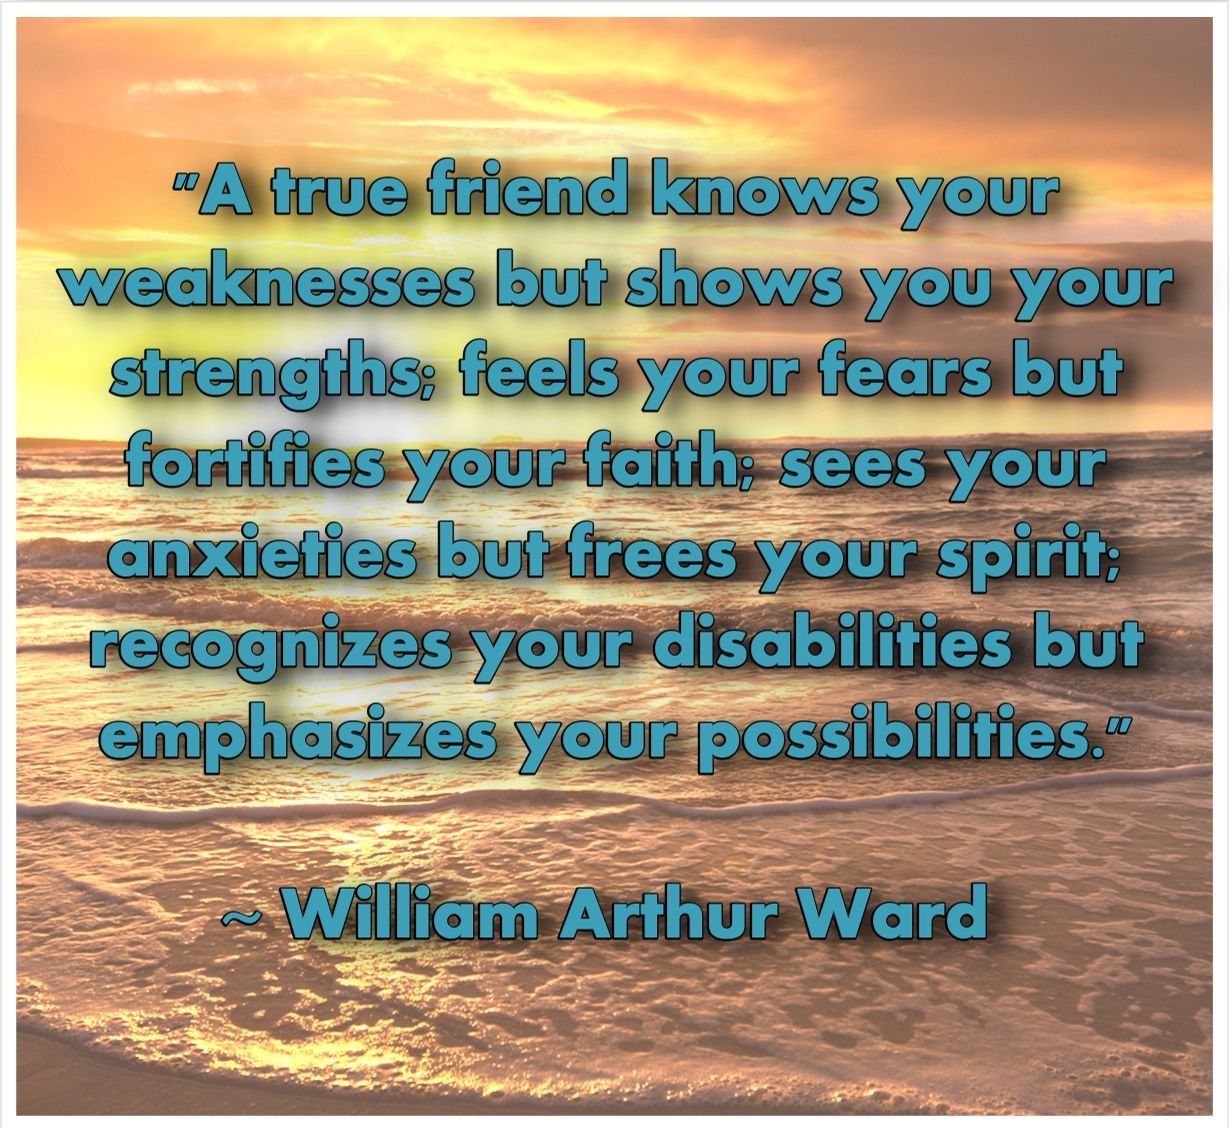 a true friend knows your weaknesses but shows you your strengths a true friend knows your weaknesses but shows you your strengths feels your fears